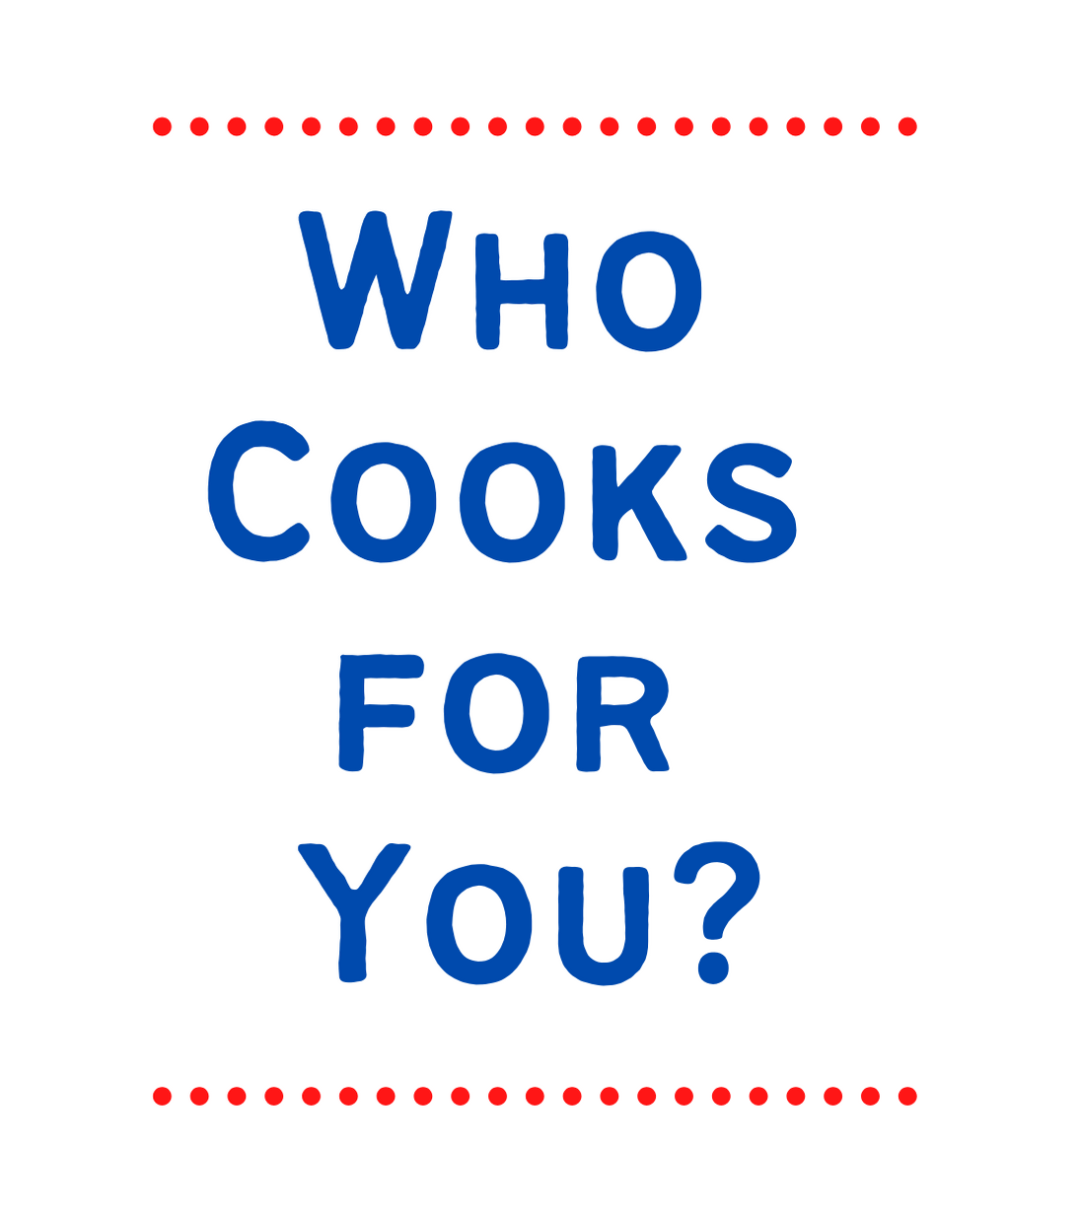 Who Cooks for You